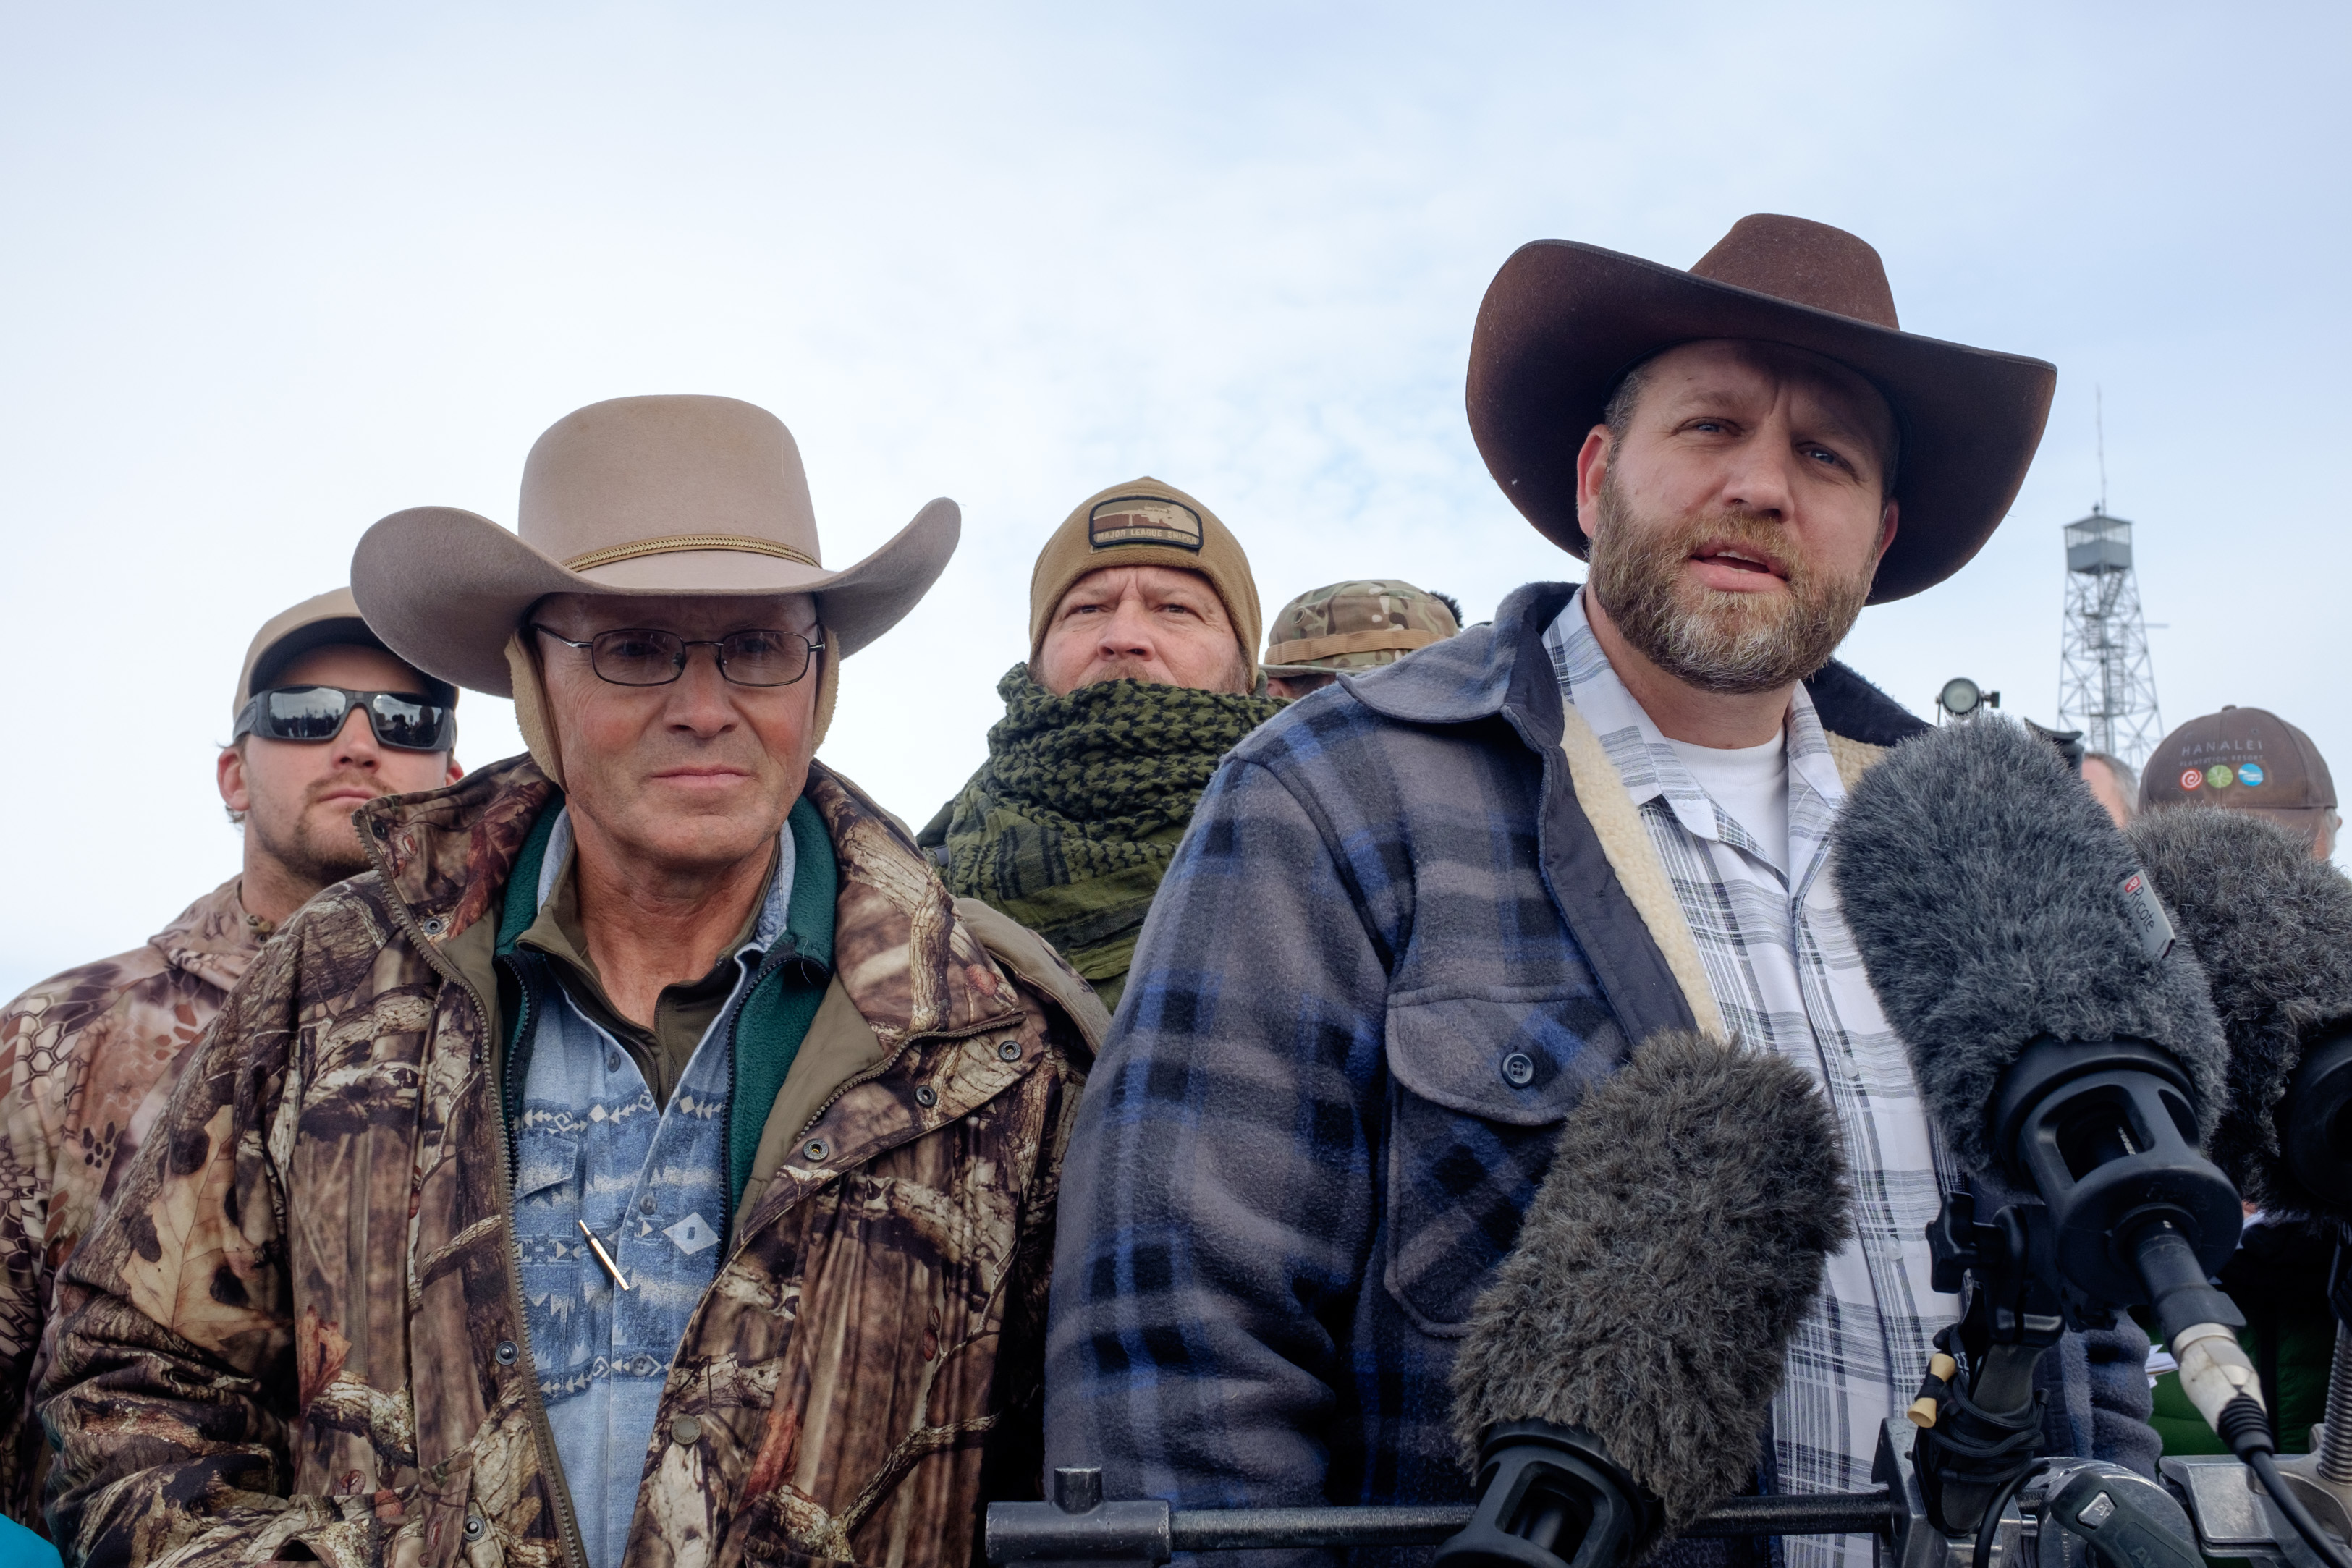 Ammon Bundy(R), leader of a group of armed anti-government protesters speaks to the media as other members look on at the Malheur National Wildlife Refuge near Burns, Ore., on Jan. 4, 2016.